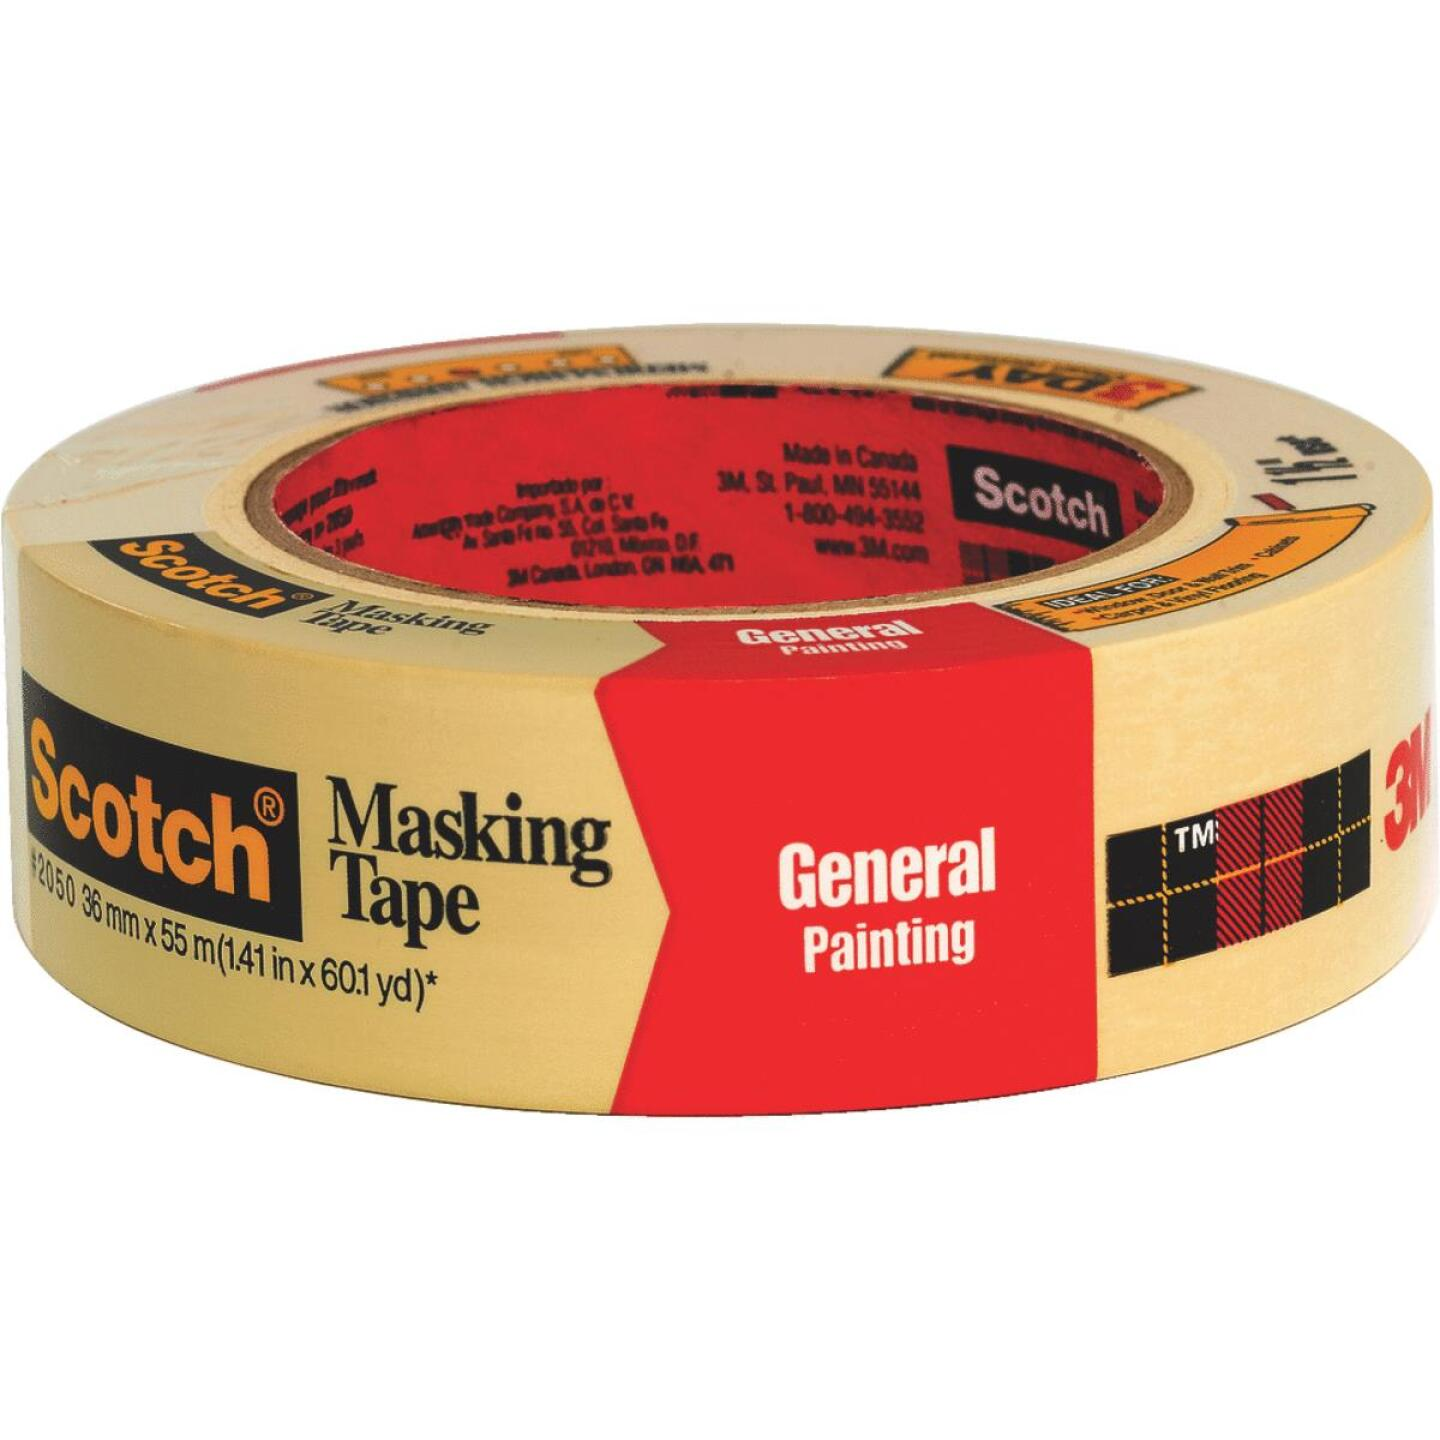 3M Scotch 1.41 x 60.1 Yd. General Painting Masking Tape Image 1